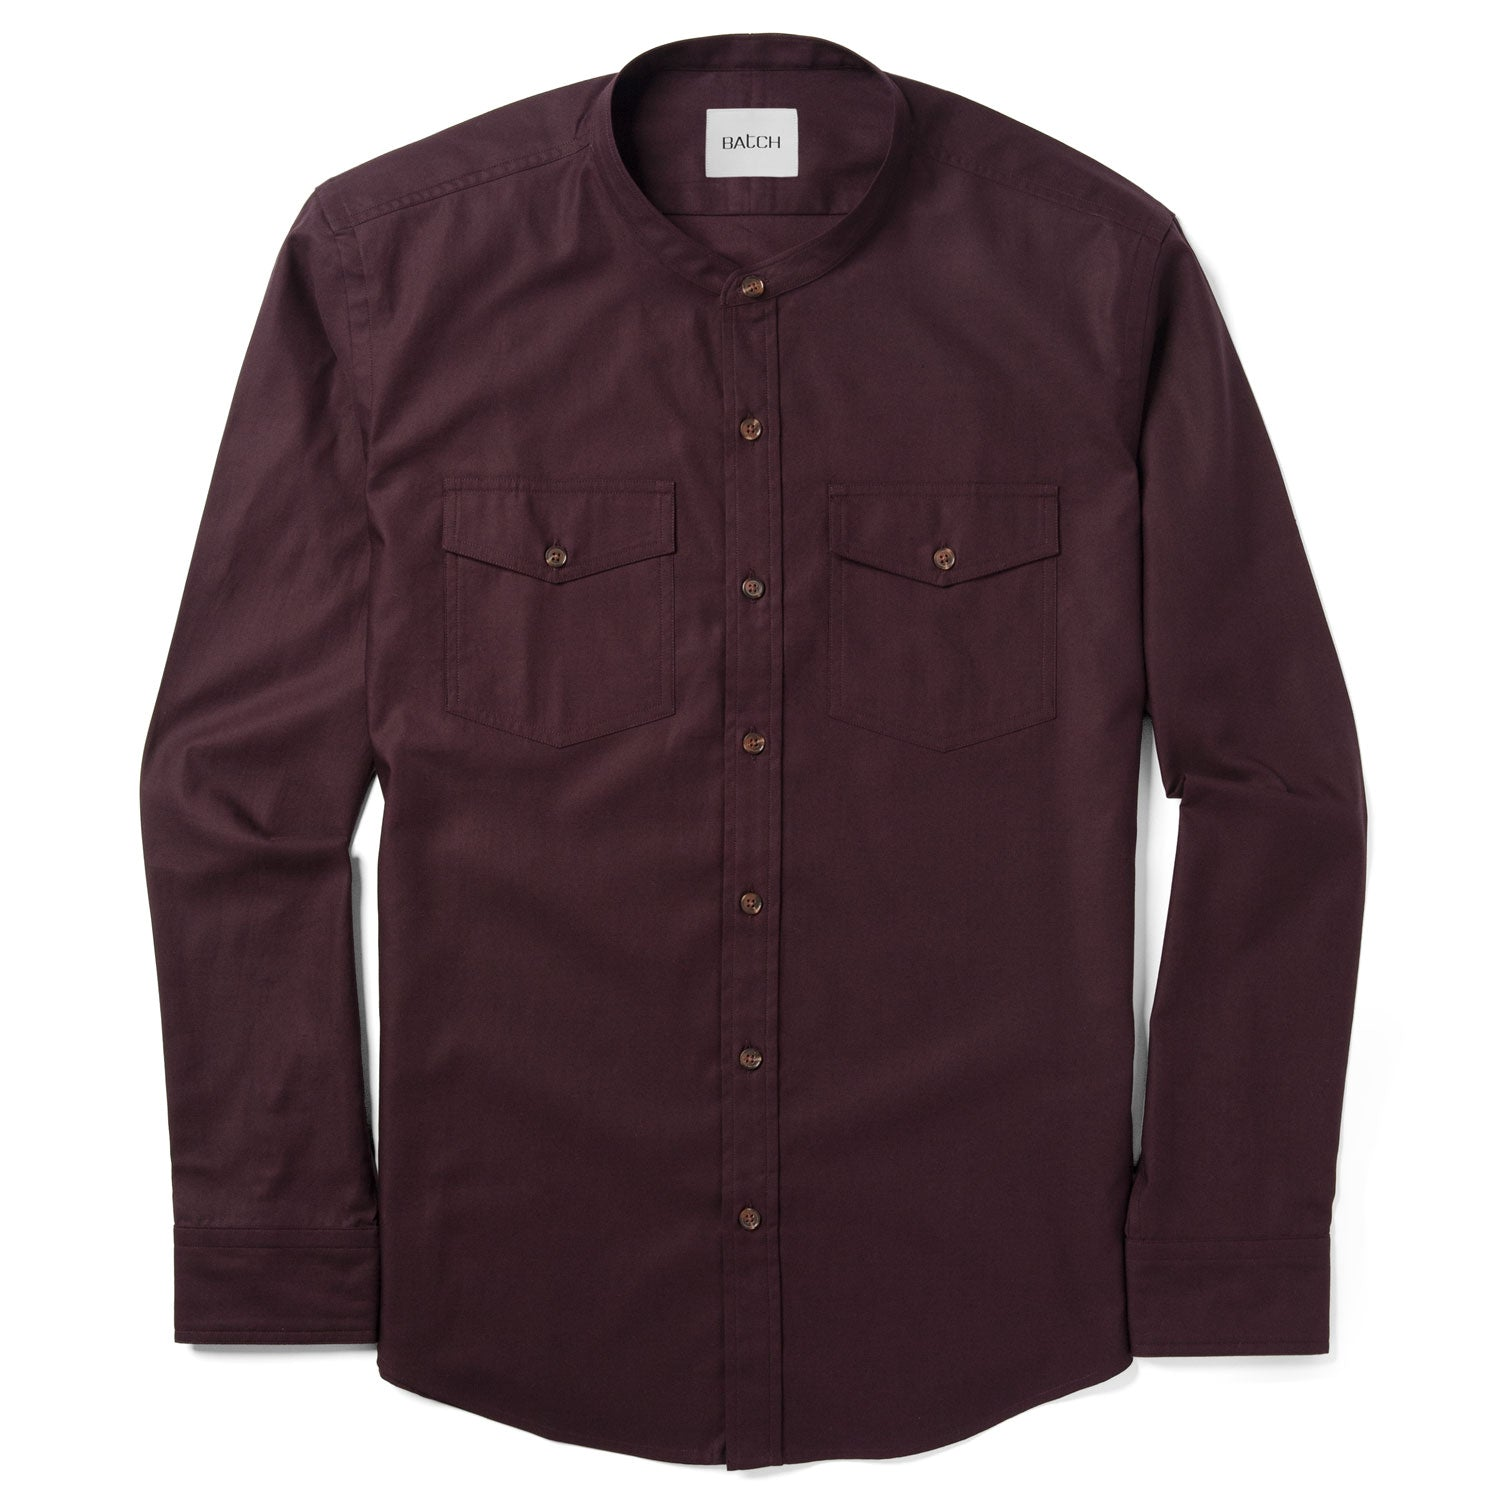 Pioneer Band Collar Utility Shirt – Dark Burgundy Mercerized Cotton